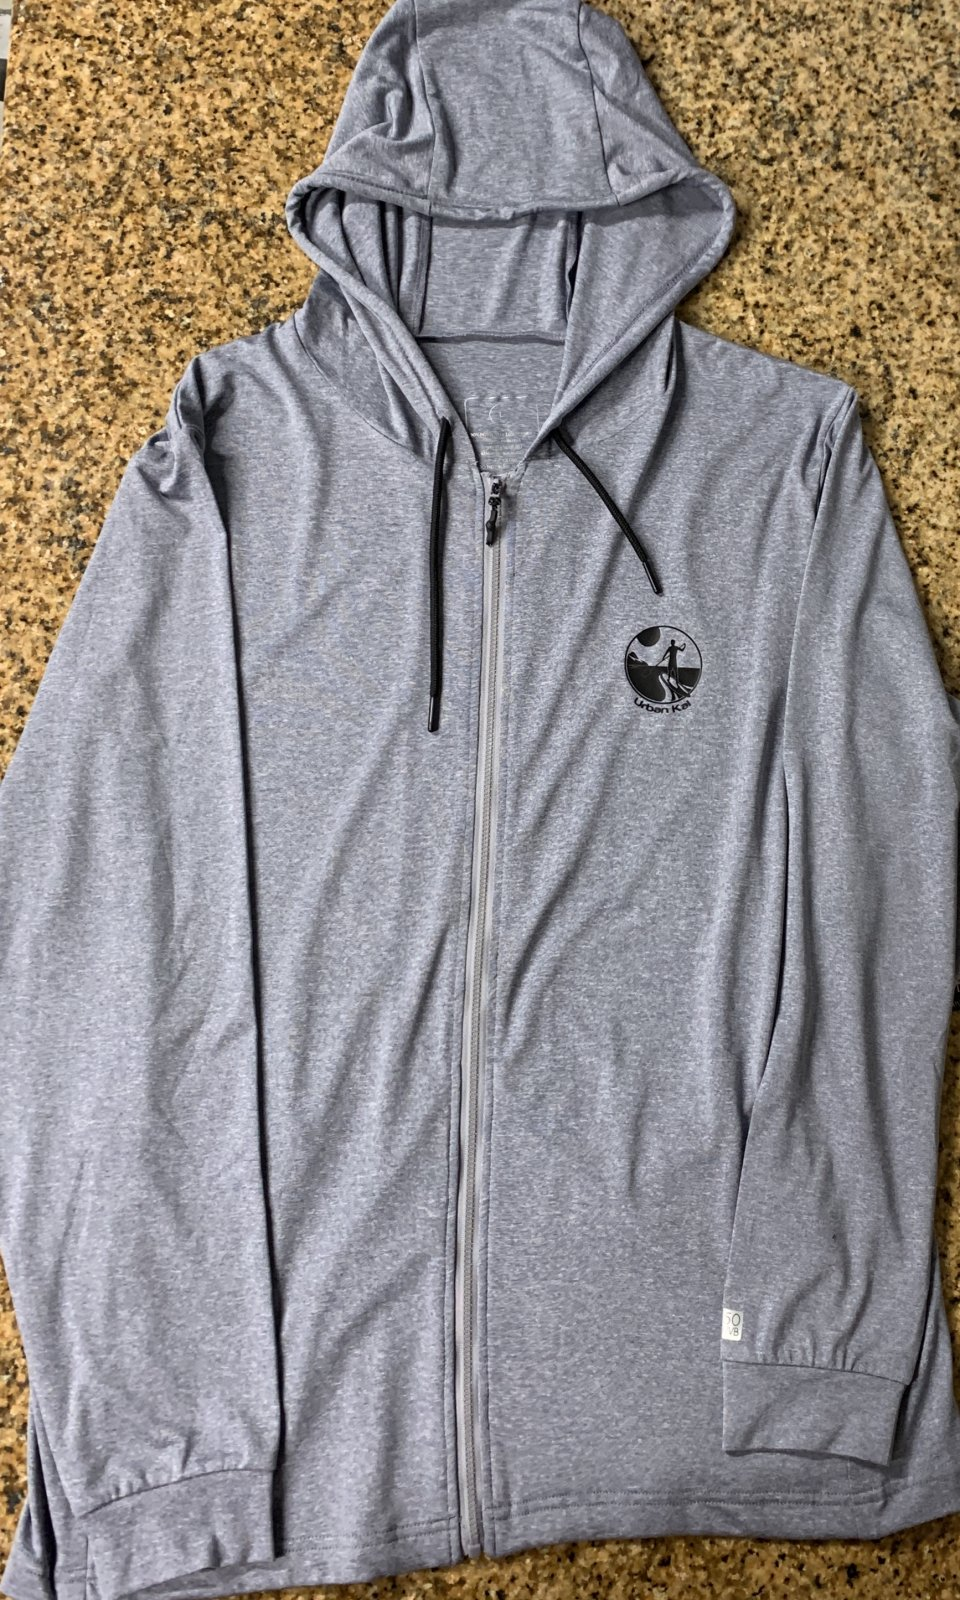 UK Sun Shirt Zip-Up Hoodie Grey